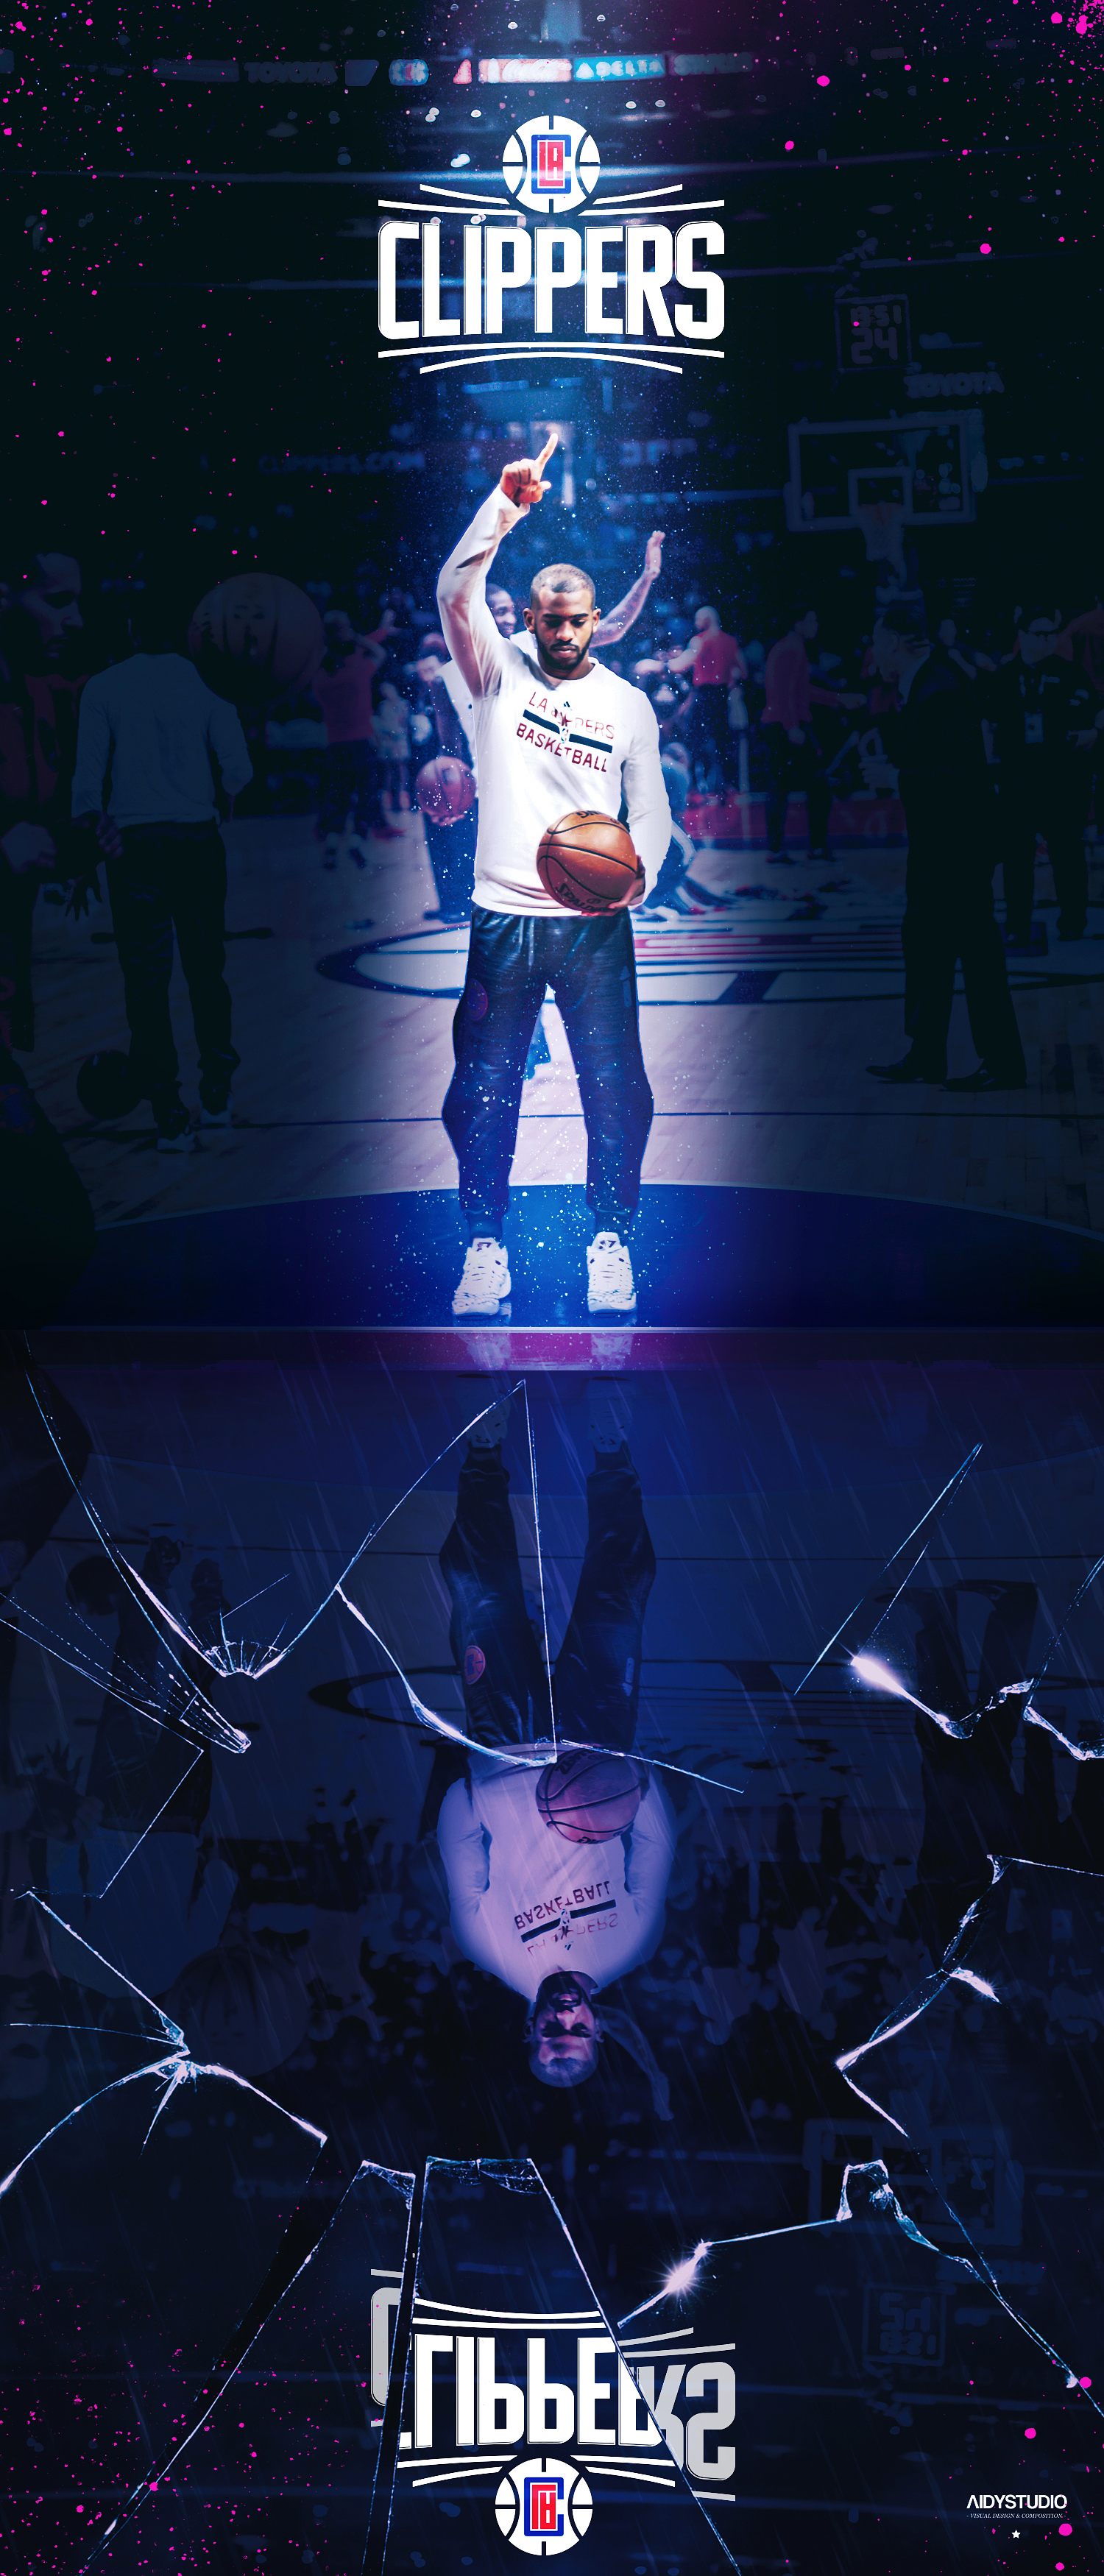 Clippers_Final Shot - Chris Paul by Duse Magazine.